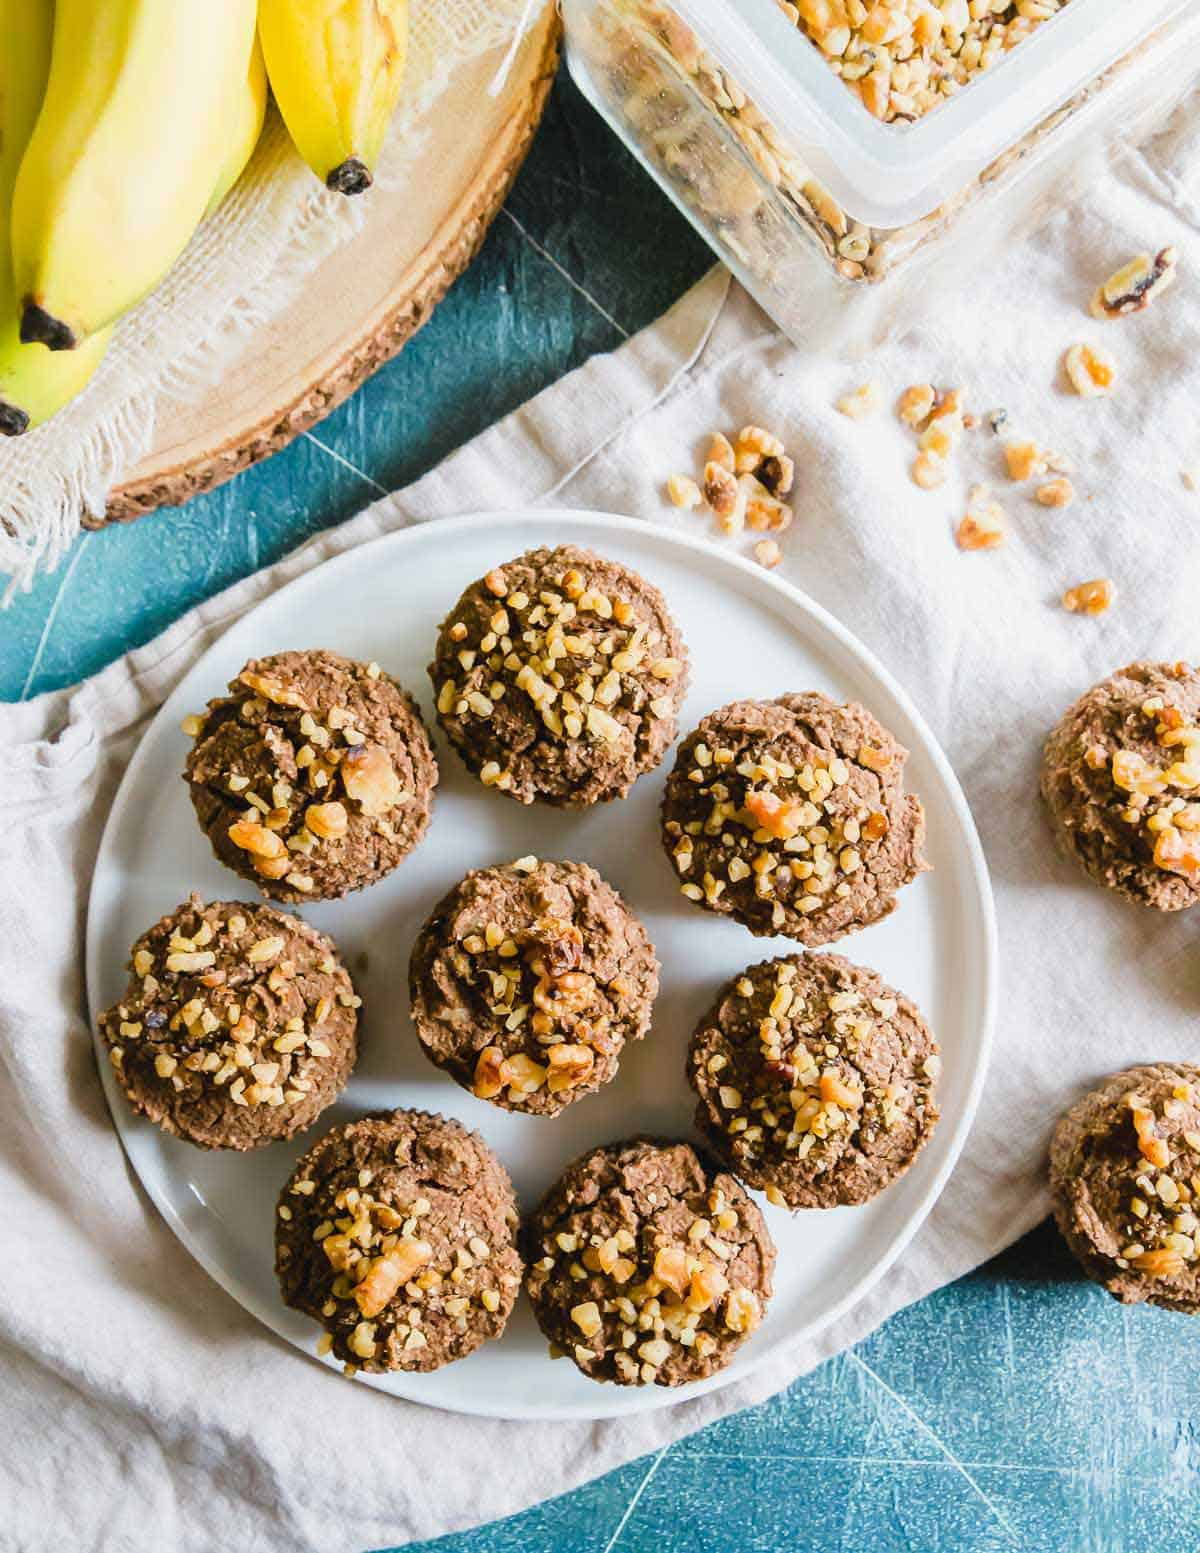 Nutty, slightly sweet and tender almond pulp muffins are the perfect way to use leftover almond pulp from making almond milk at home.